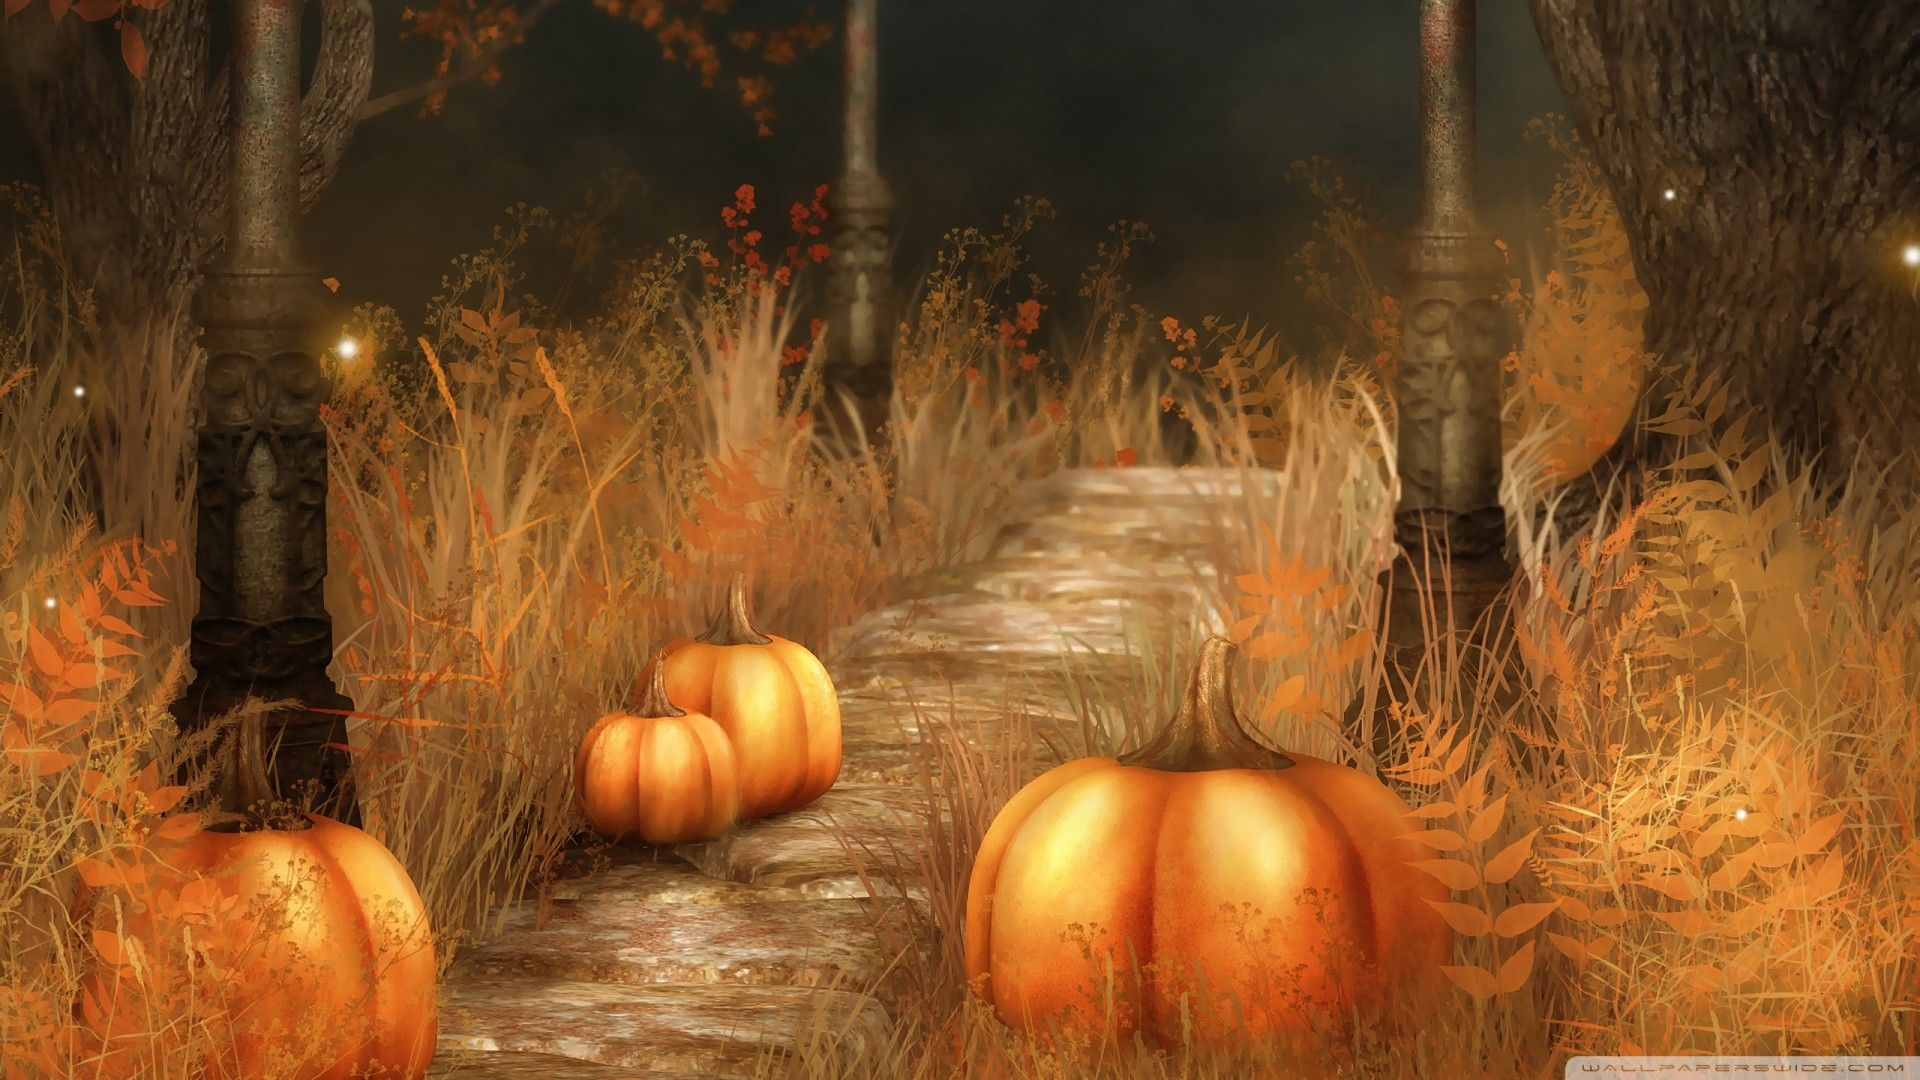 1920x1080 Fall Wallpapers With Pumpkins (57+ images)